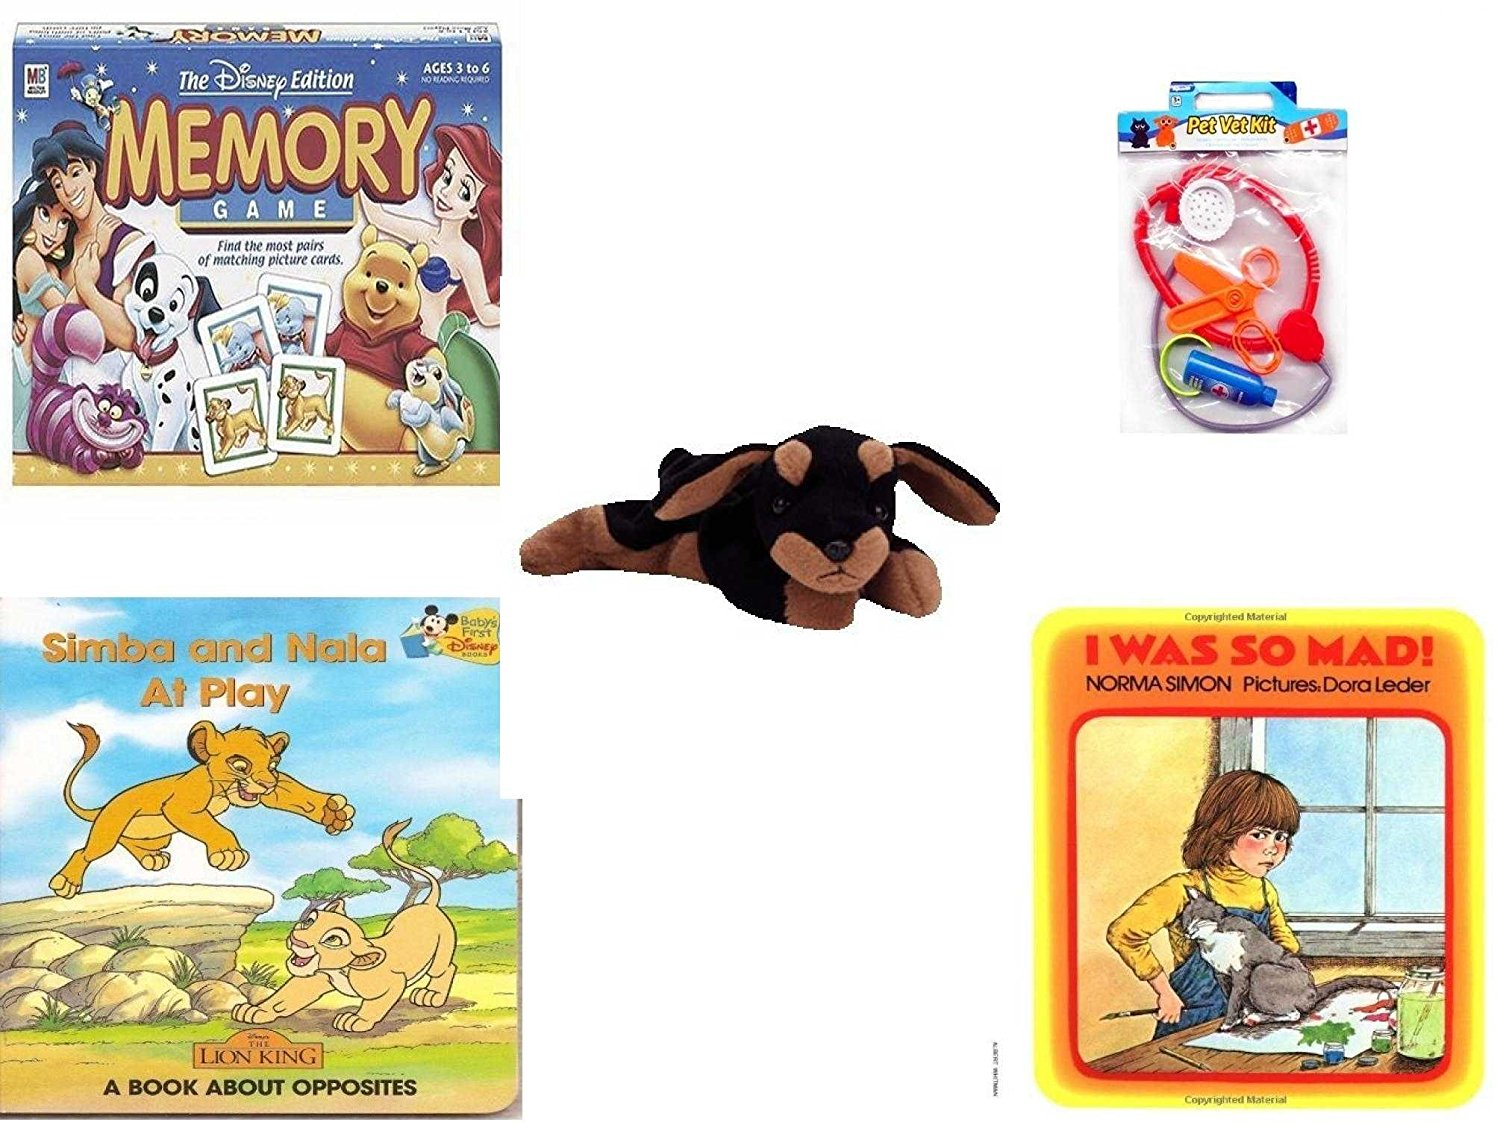 Children's Gift Bundle - Ages 3-5 [5 Piece] - The Disney Edition Memory Game - Pet Vet Kit Veterinarian 4pc Set Toy - Ty Beanie Baby - Doby the Doberman - Simba and Nala At Play: A Book About Opposi